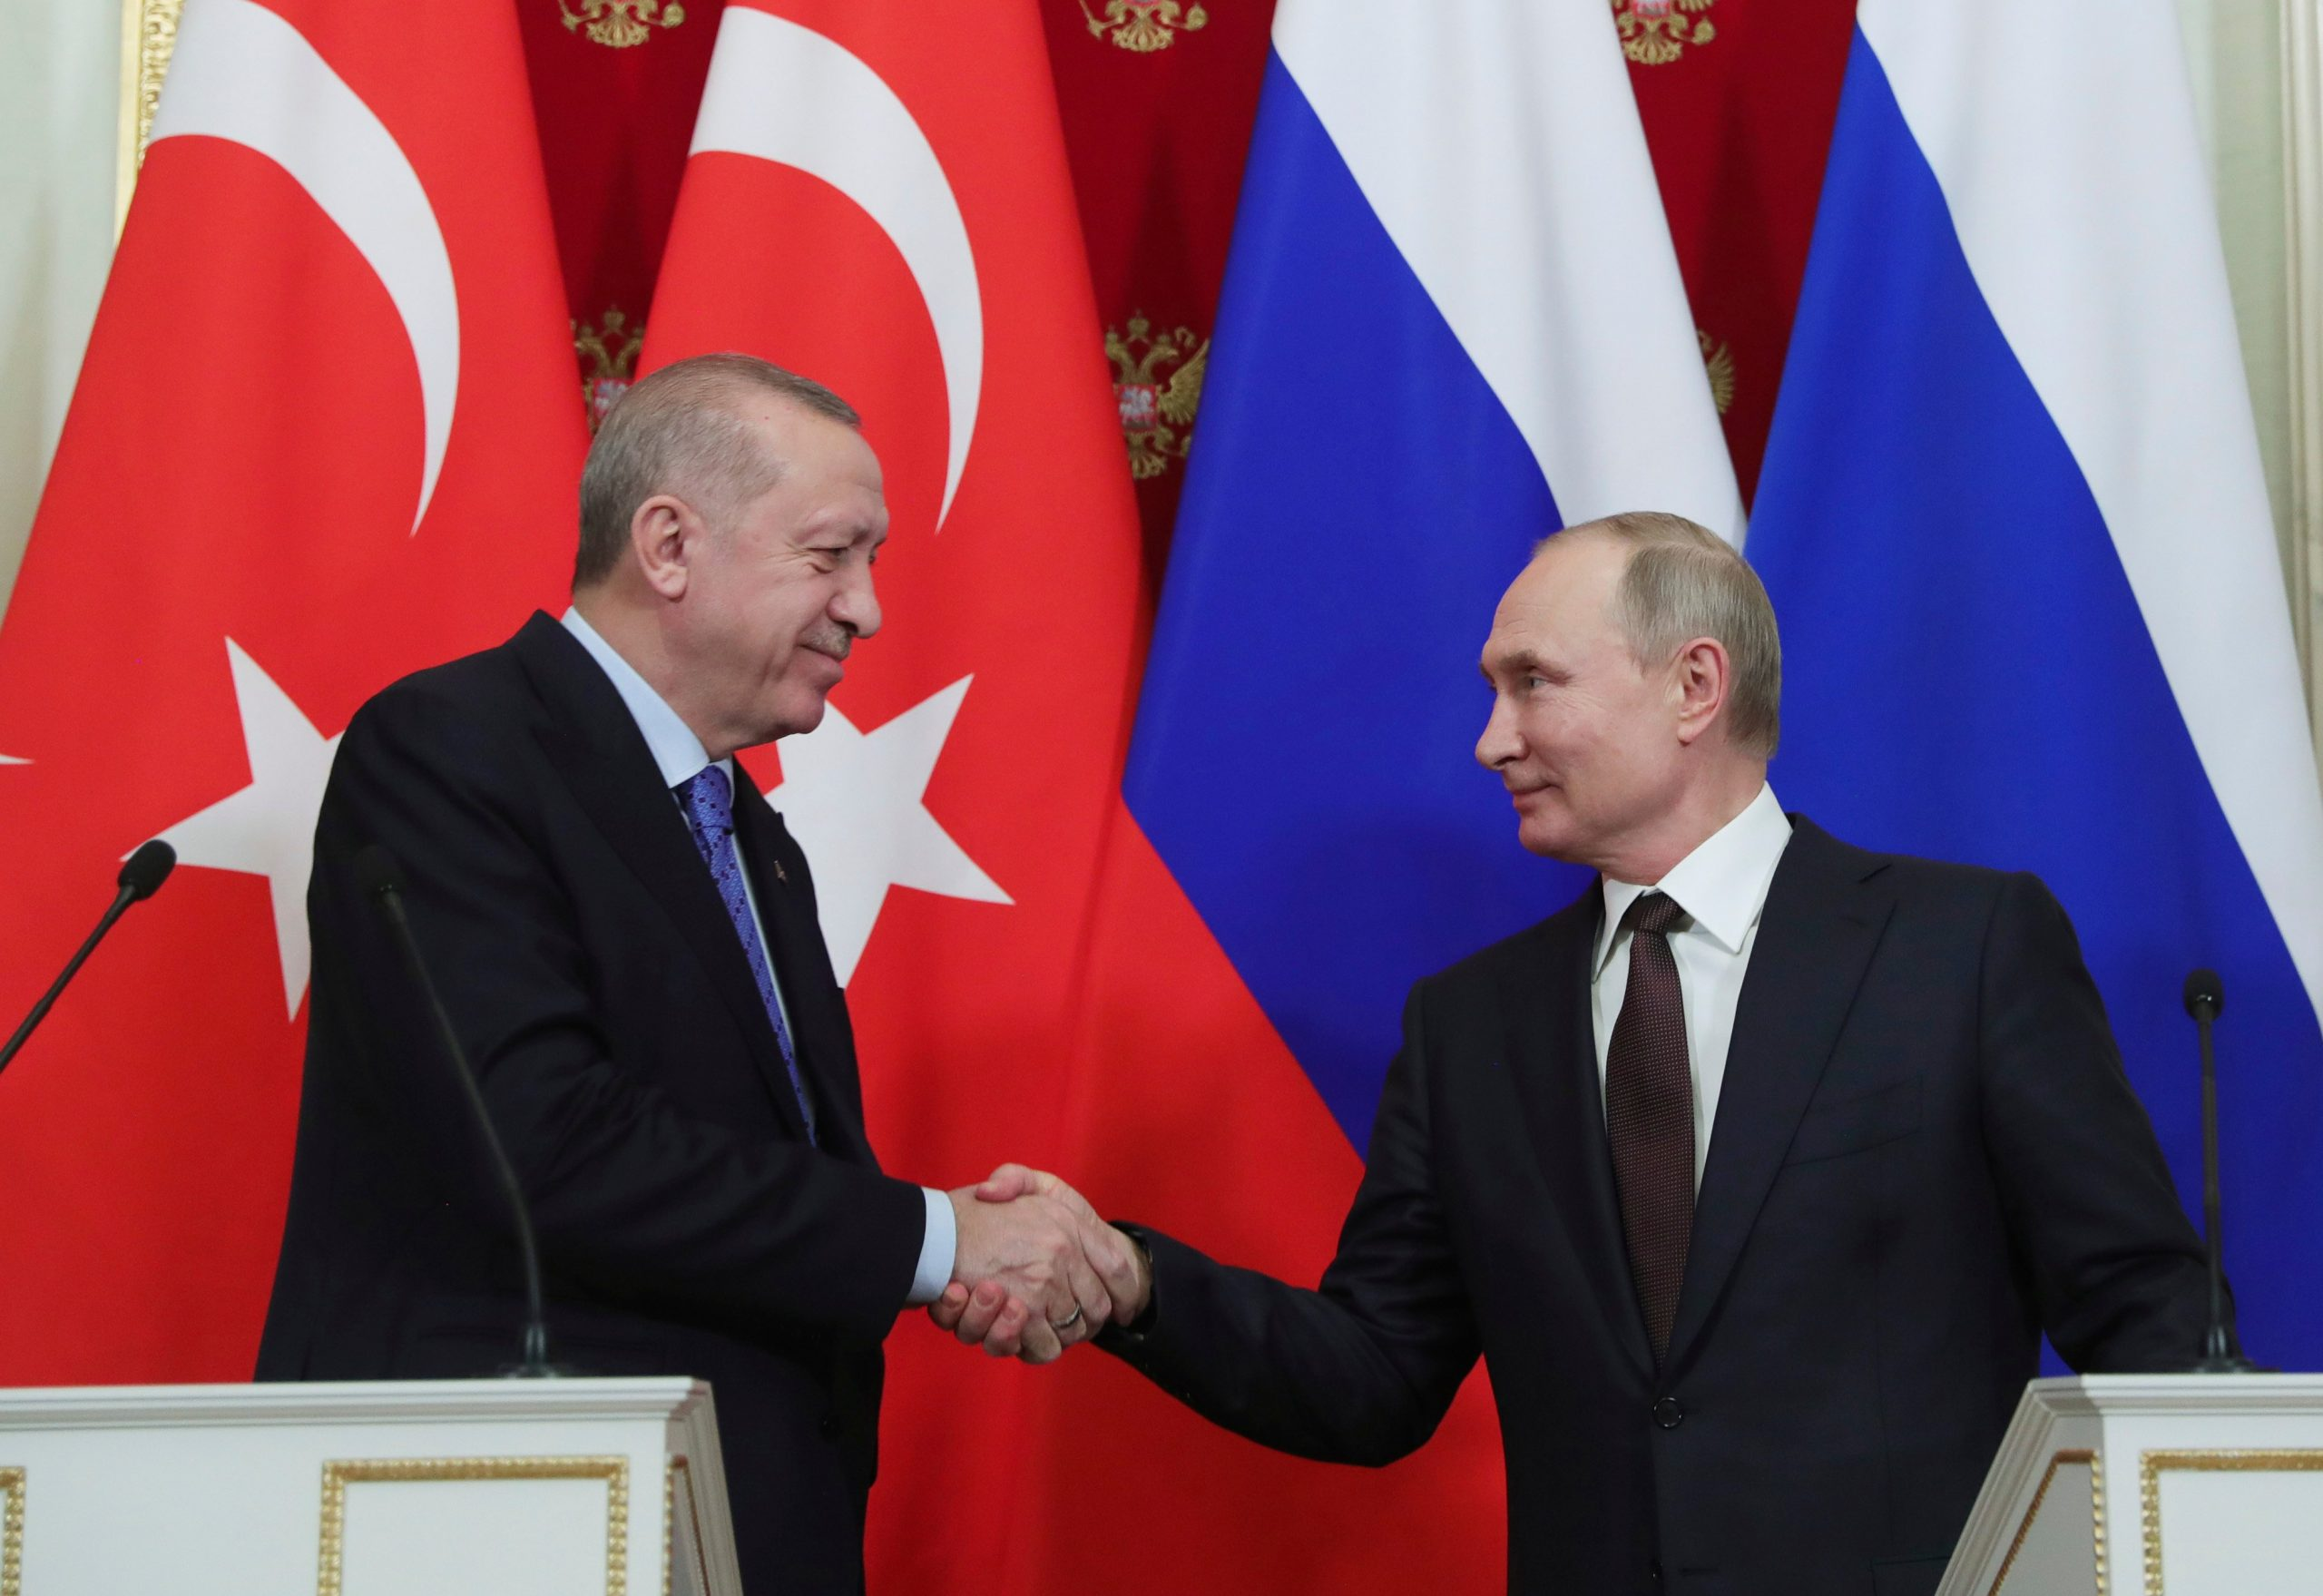 Turkey and Russia to preserve status-quo in Syria's Idlib, Turkish official says